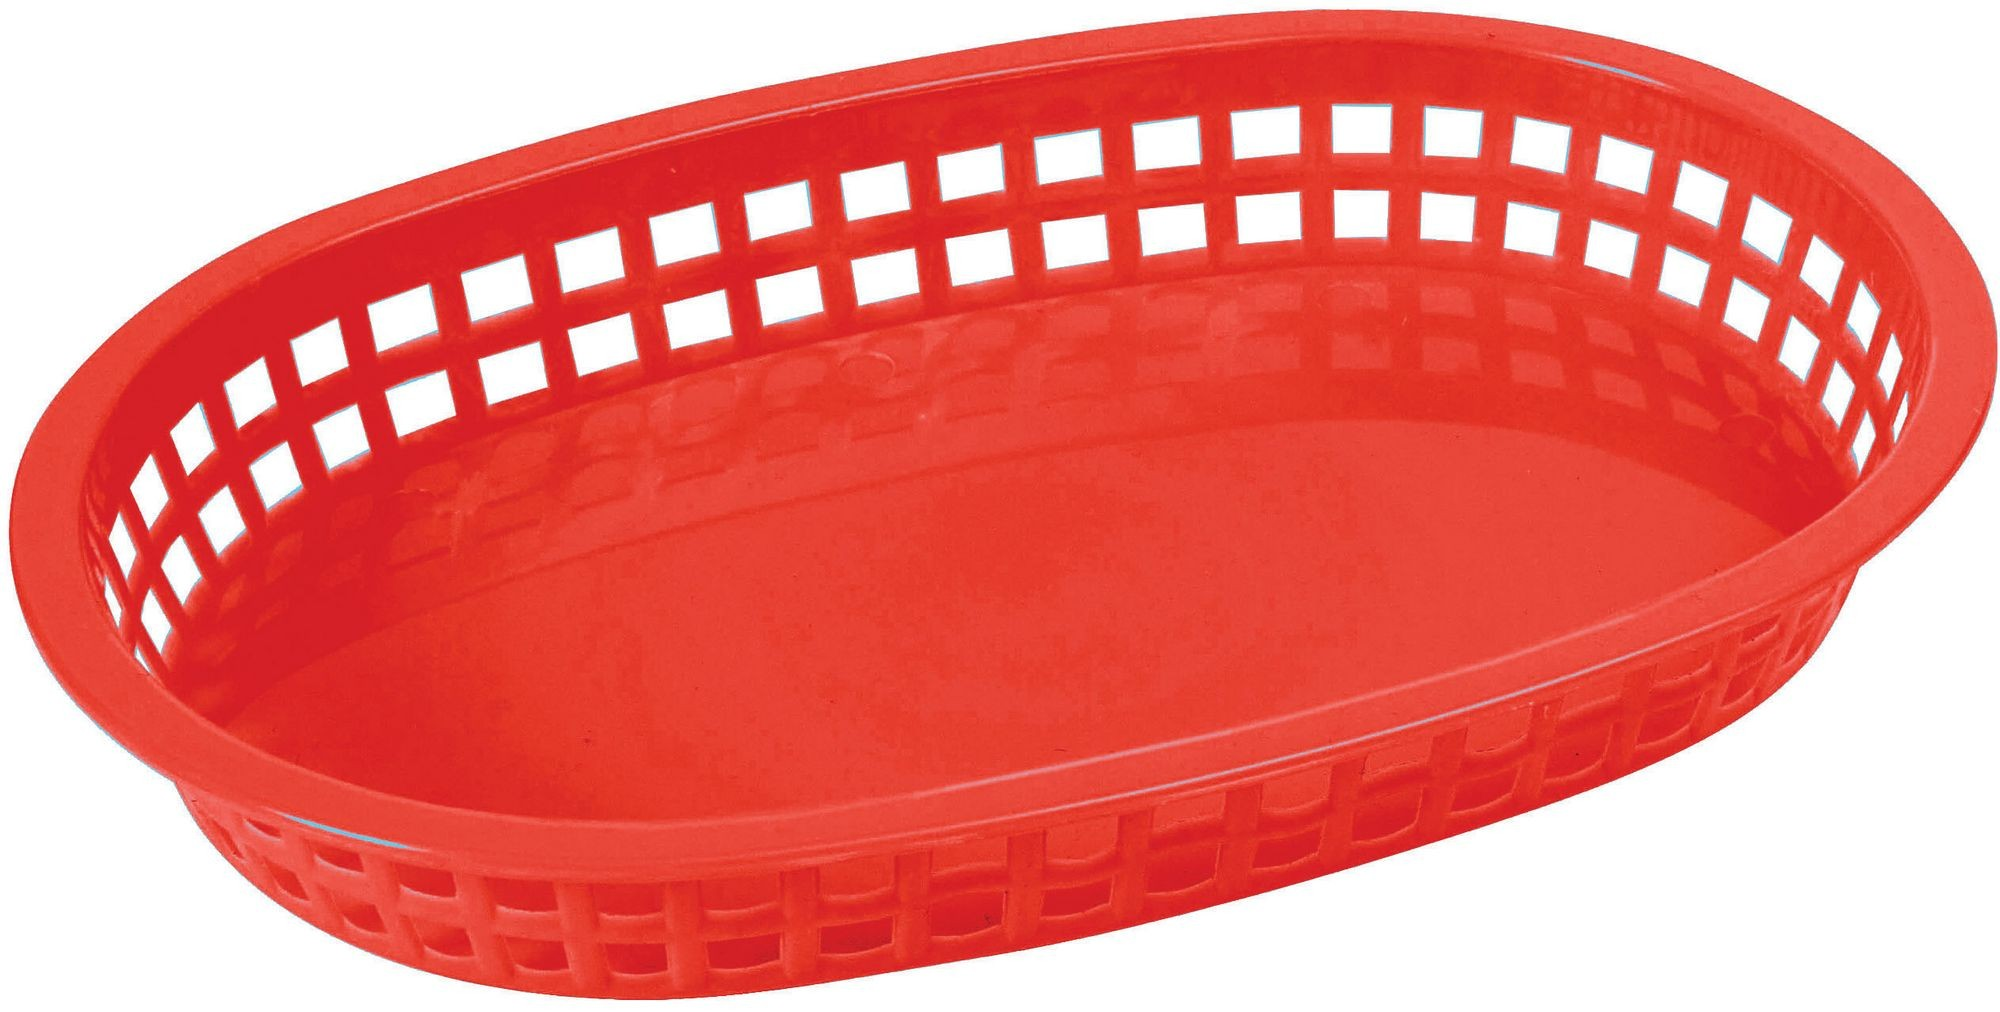 "Winco PLB-R Red Oval Fast Food Basket, 10-3/4"" x 7-1/4"" x 1-1/2"""